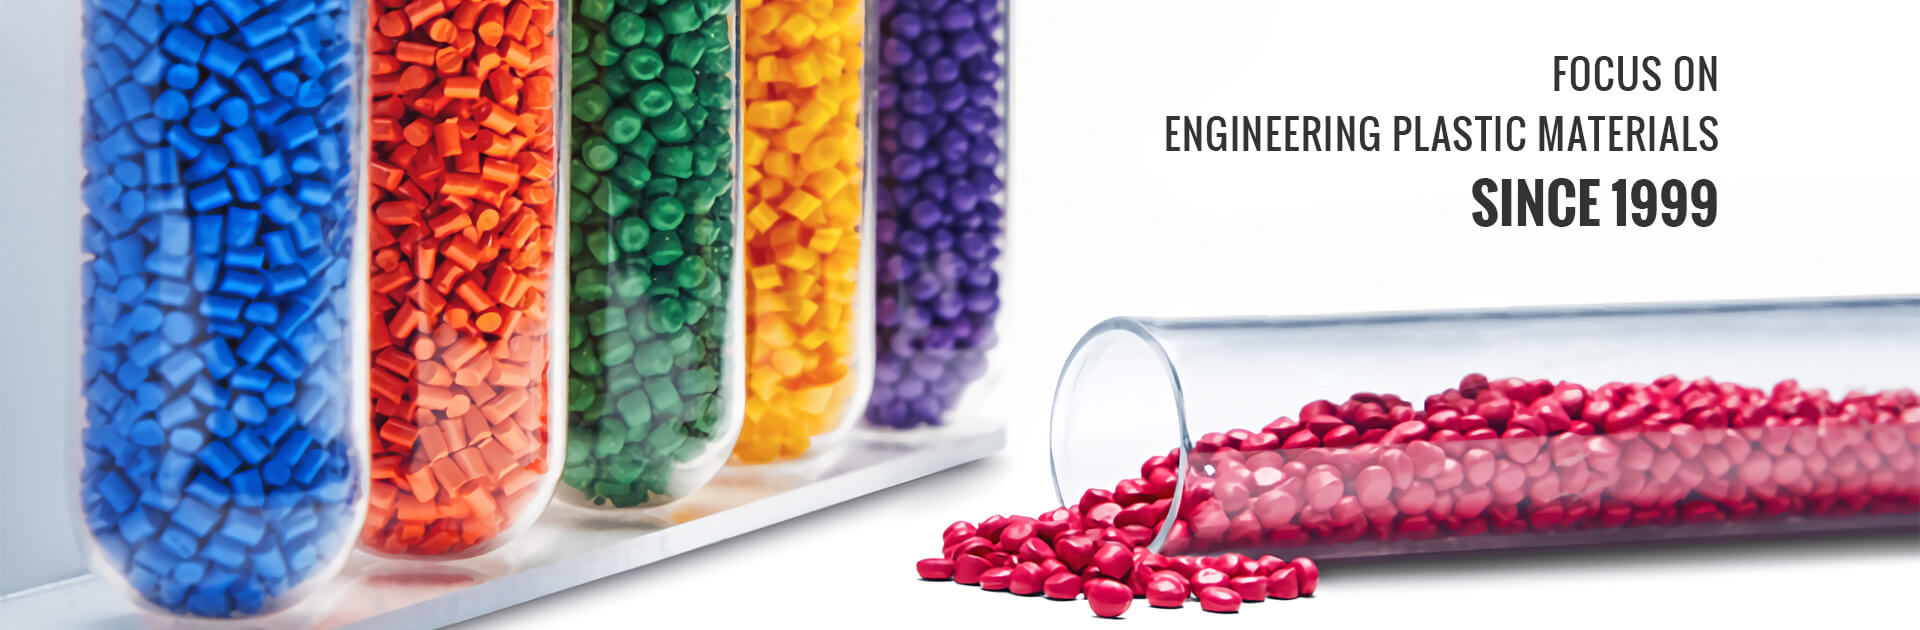 Focus on Engineering Plastic Materials